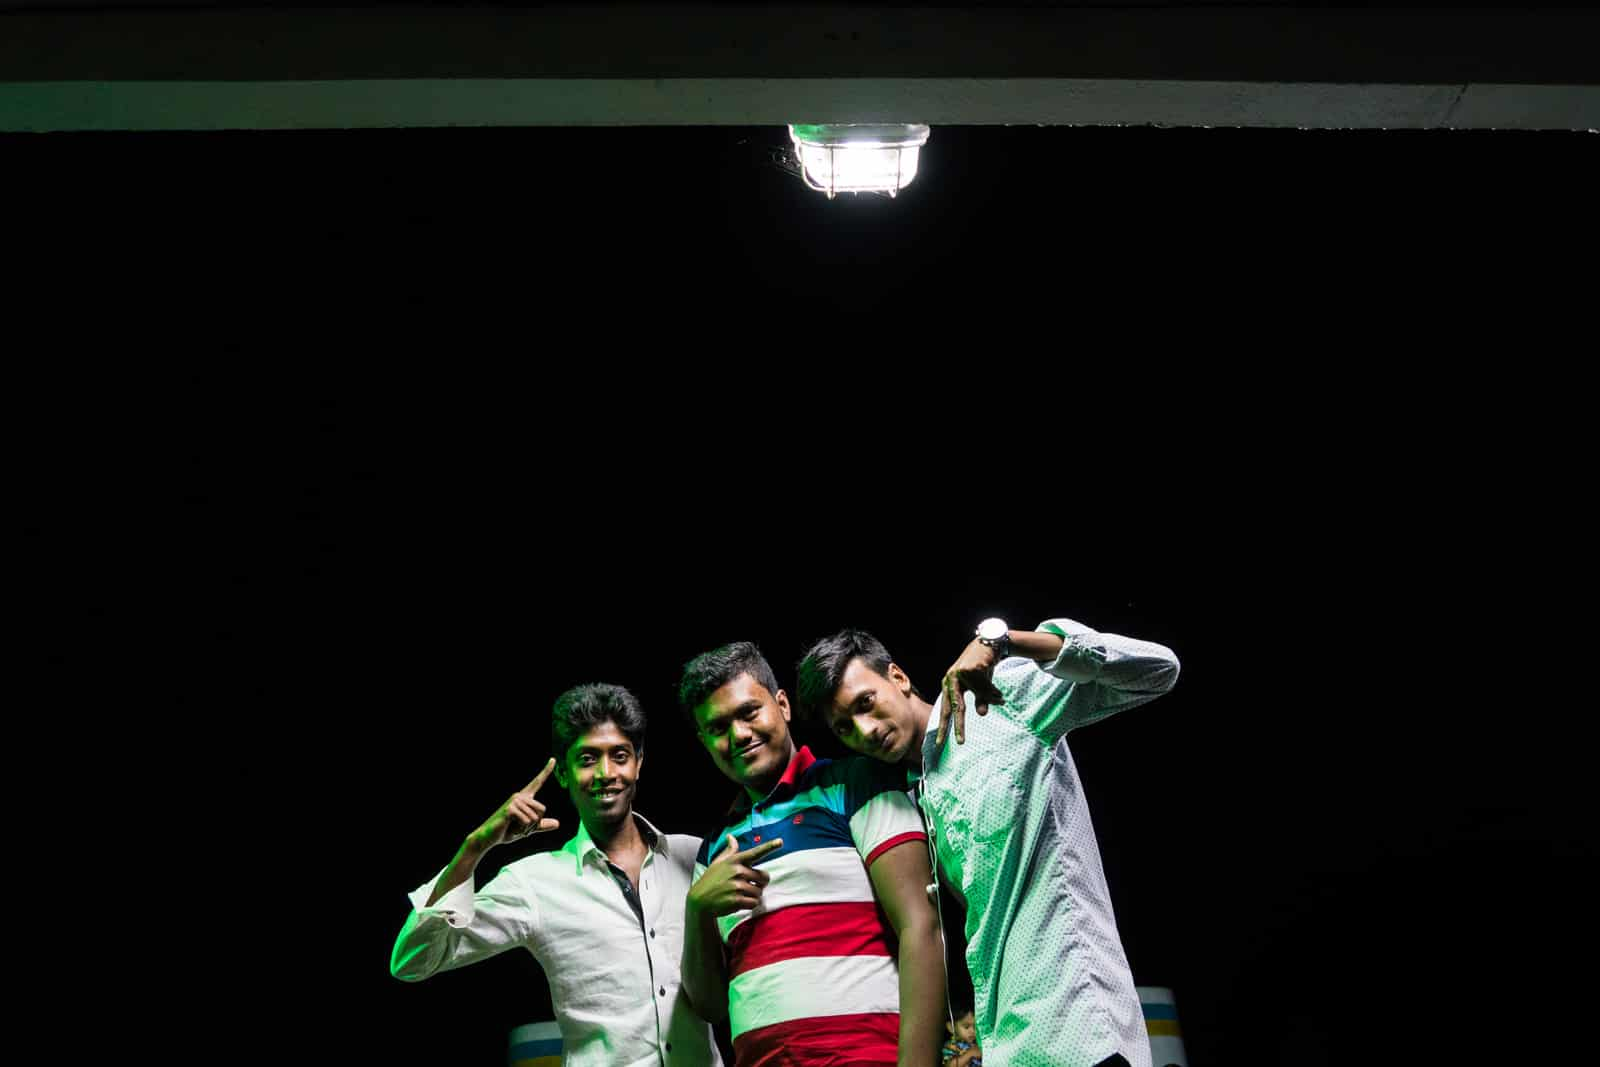 Launches from Hularhat to Dhaka, Bangladesh - Boys posing at night on the launch boat - Lost With Purpose travel blog